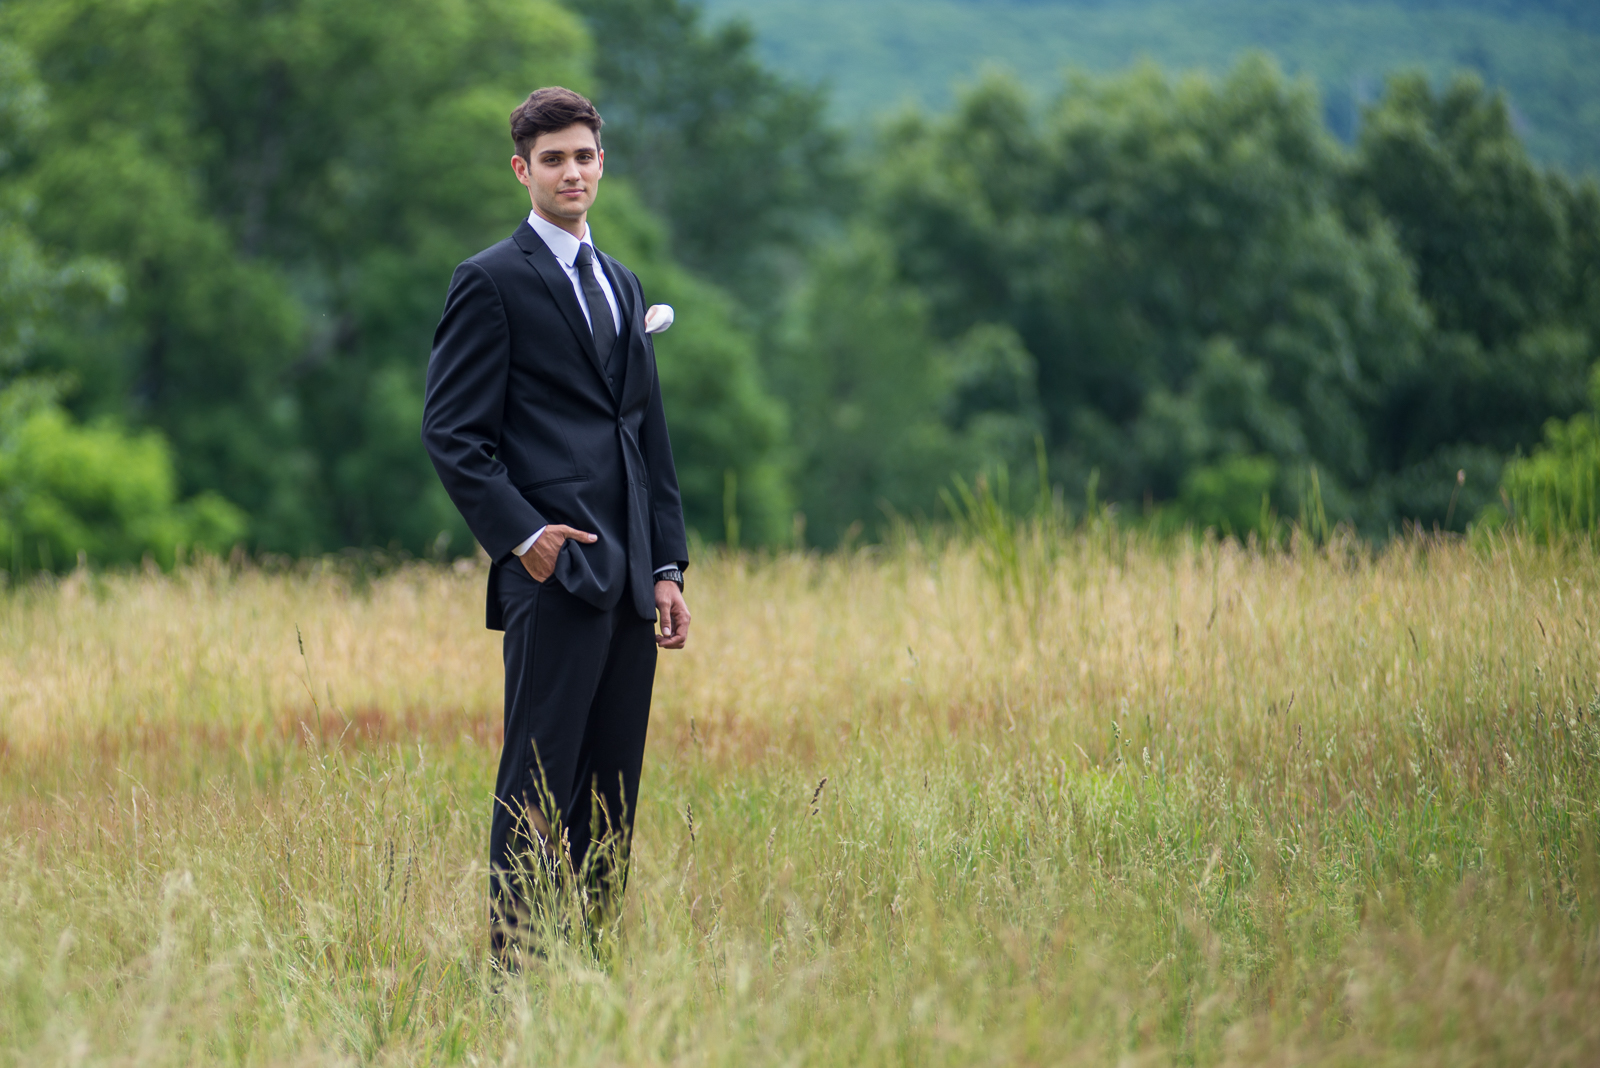 Four_Wings_Photography_Wedding_Red_Barn_at_Hampshire_College-7.jpg